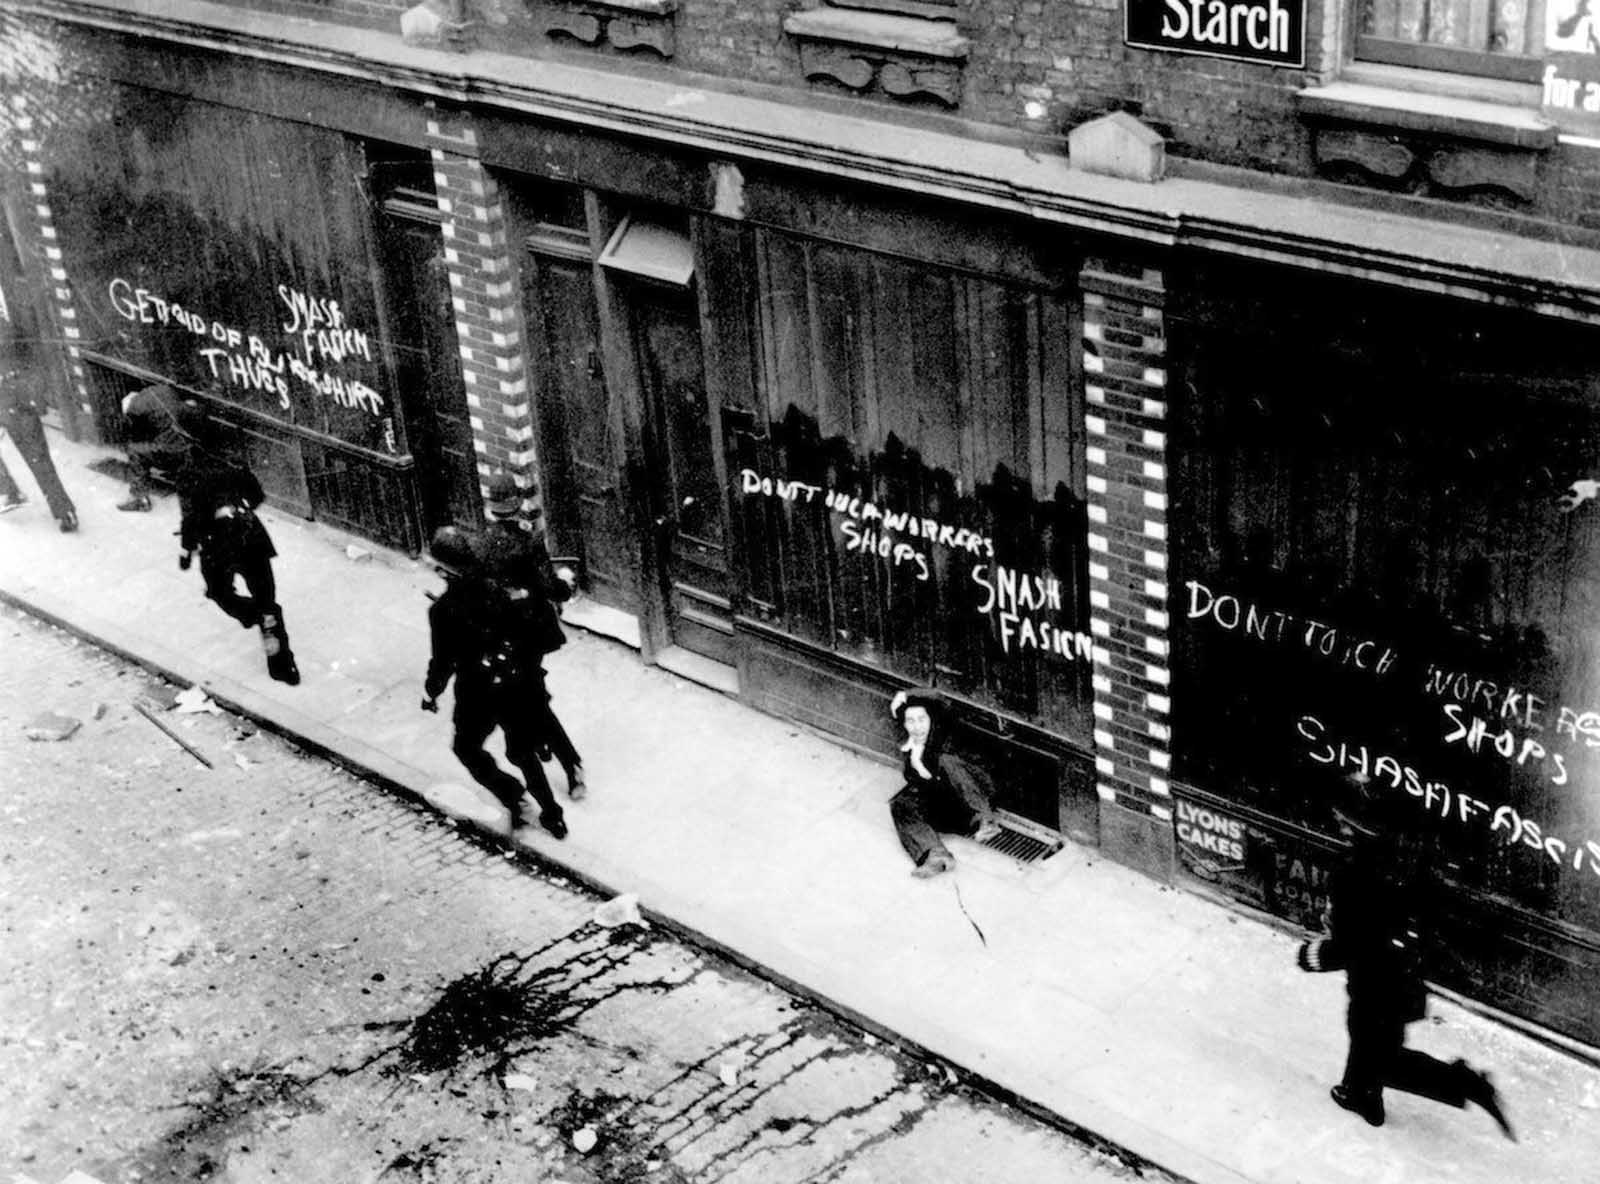 Policemen chasing Communist counter-demonstrators at a Fascist demonstration near Mark Lane, London. 1936.